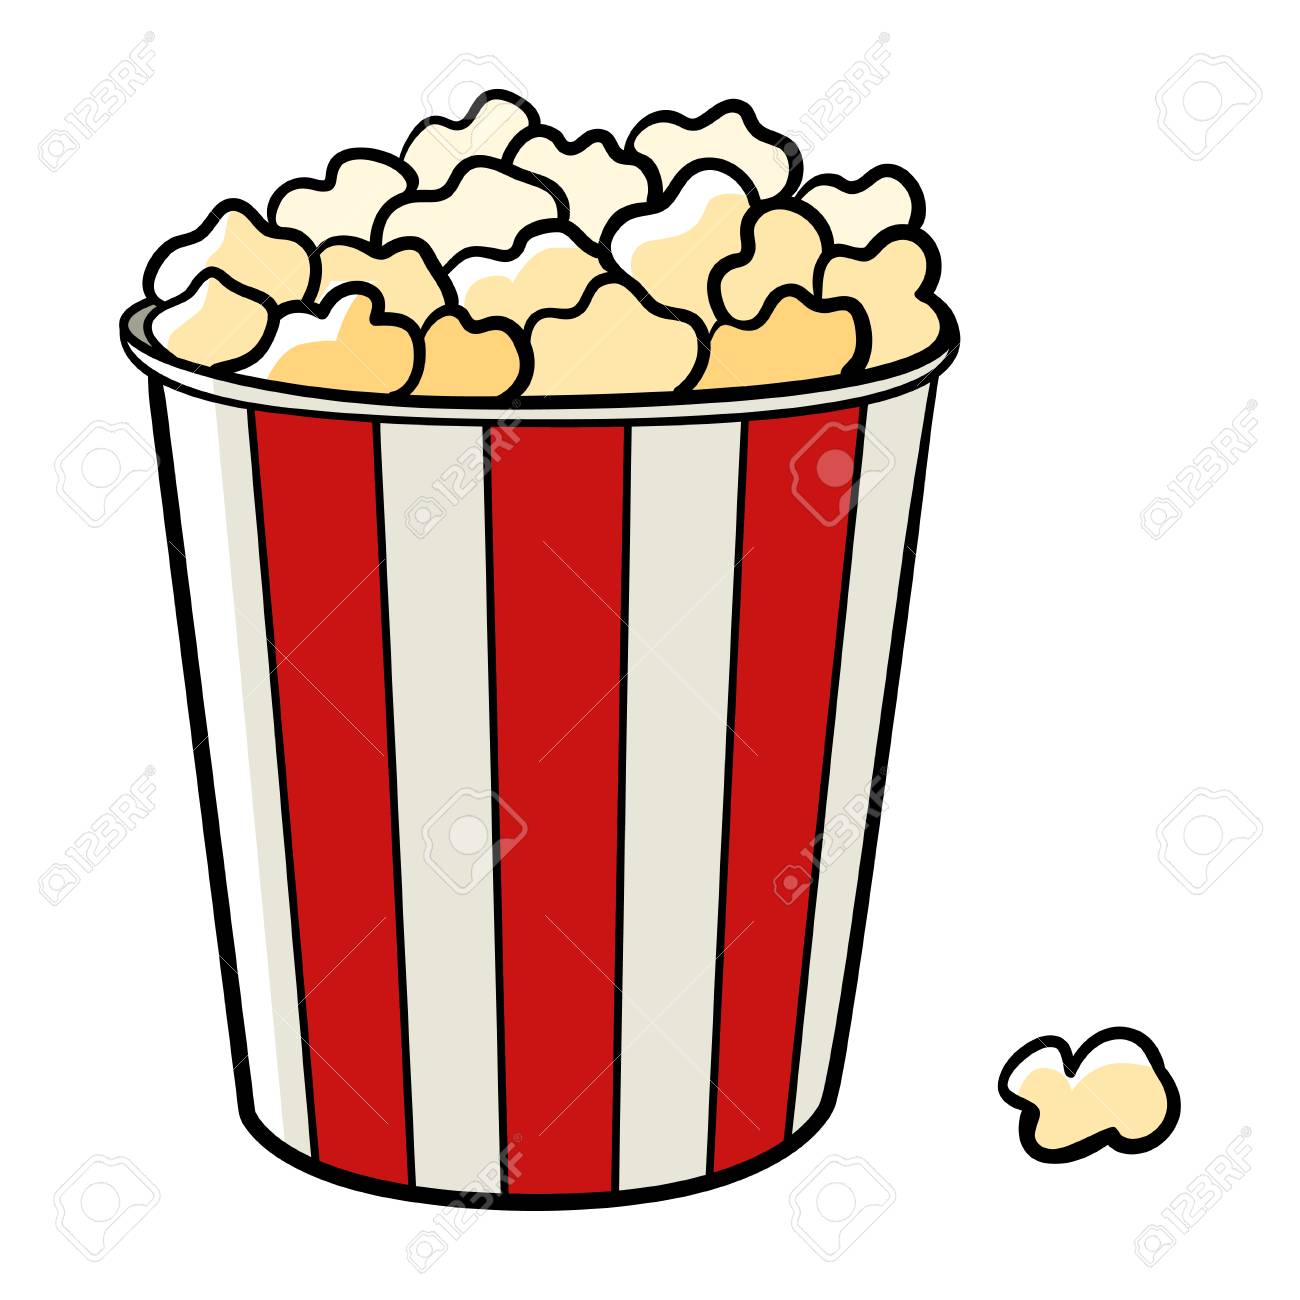 Cartoon Illustration Of A Bucket Of Popcorn Royalty Free Cliparts Vectors And Stock Illustration Image 50429847